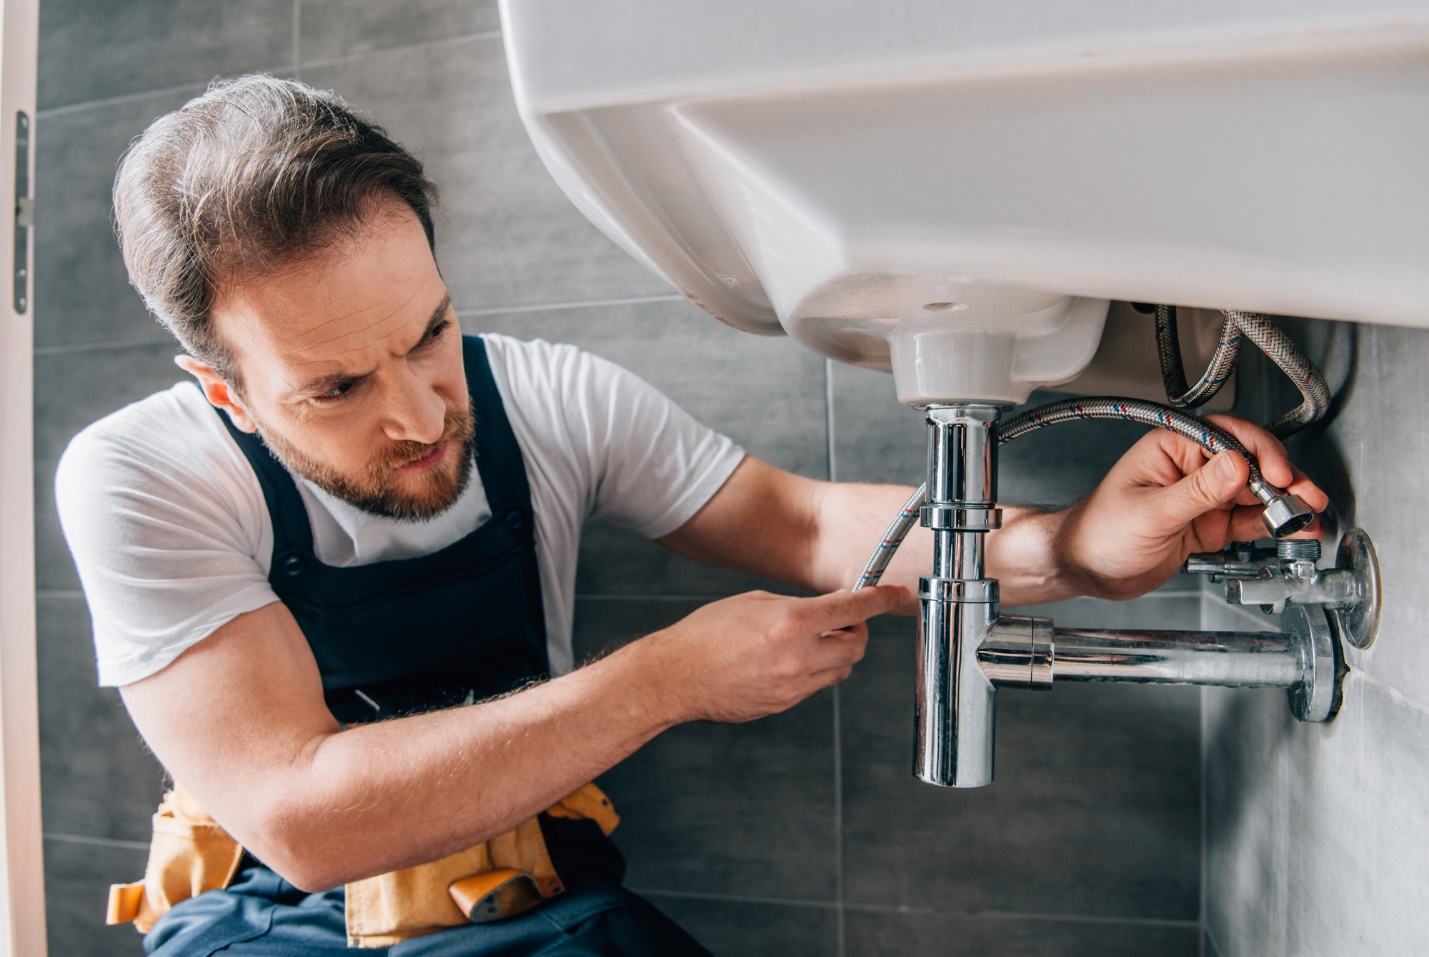 5 Questions to Ask Your Plumber before Agreeing on a Cost